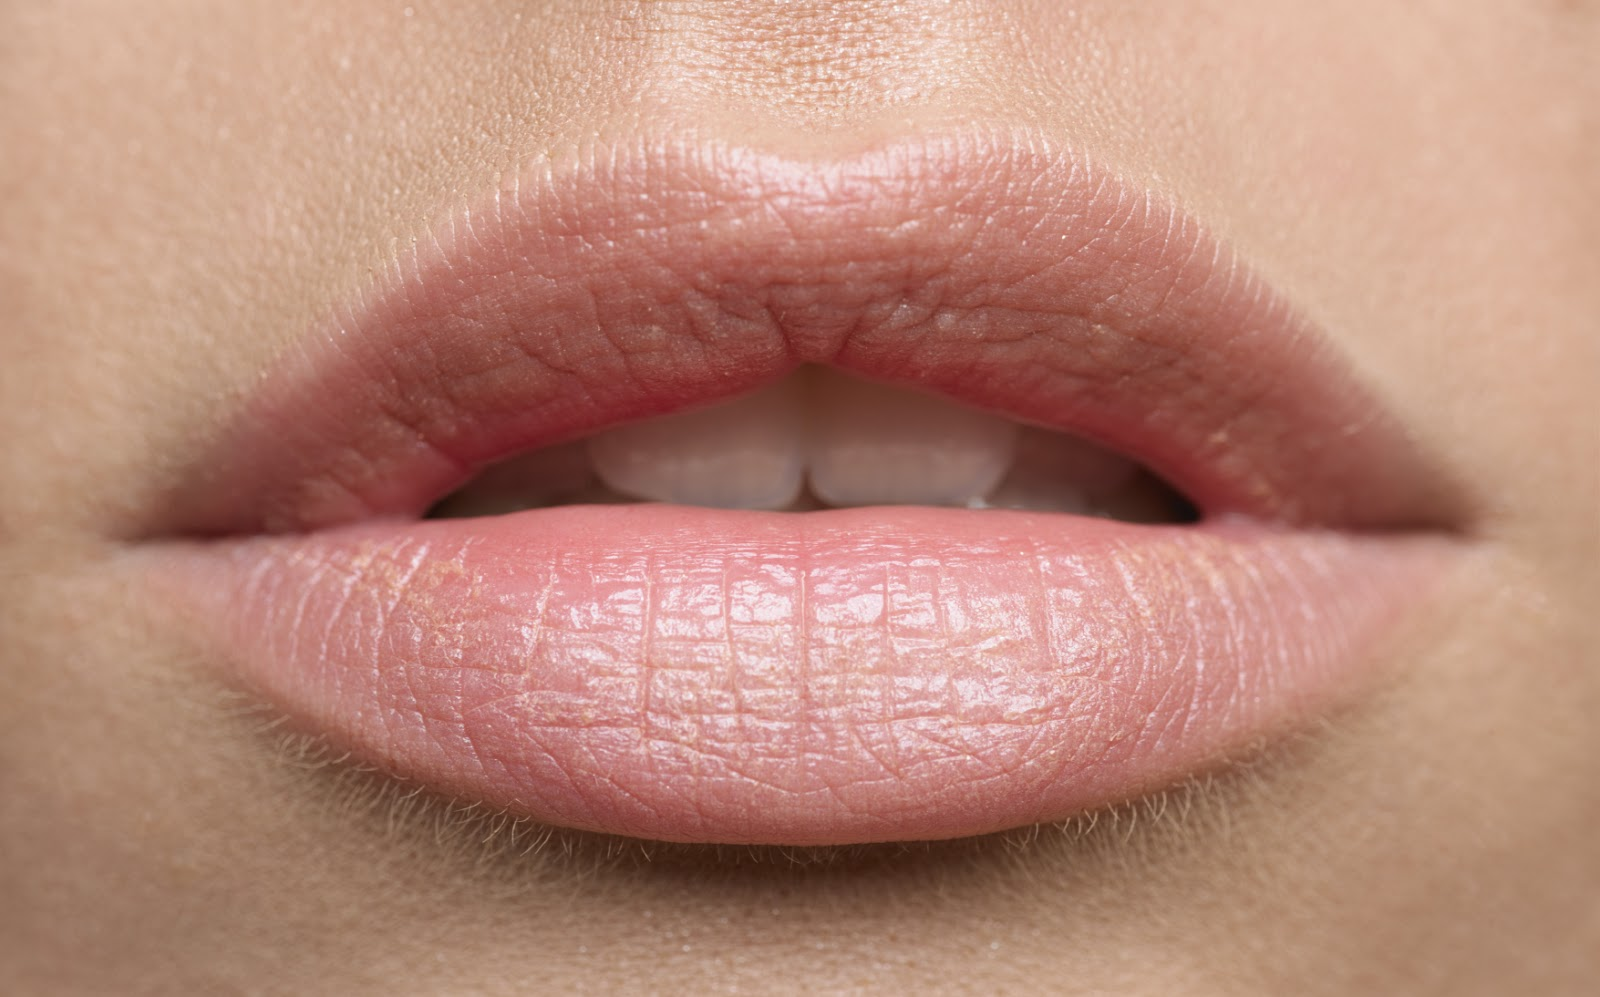 How To Save Sore Lips